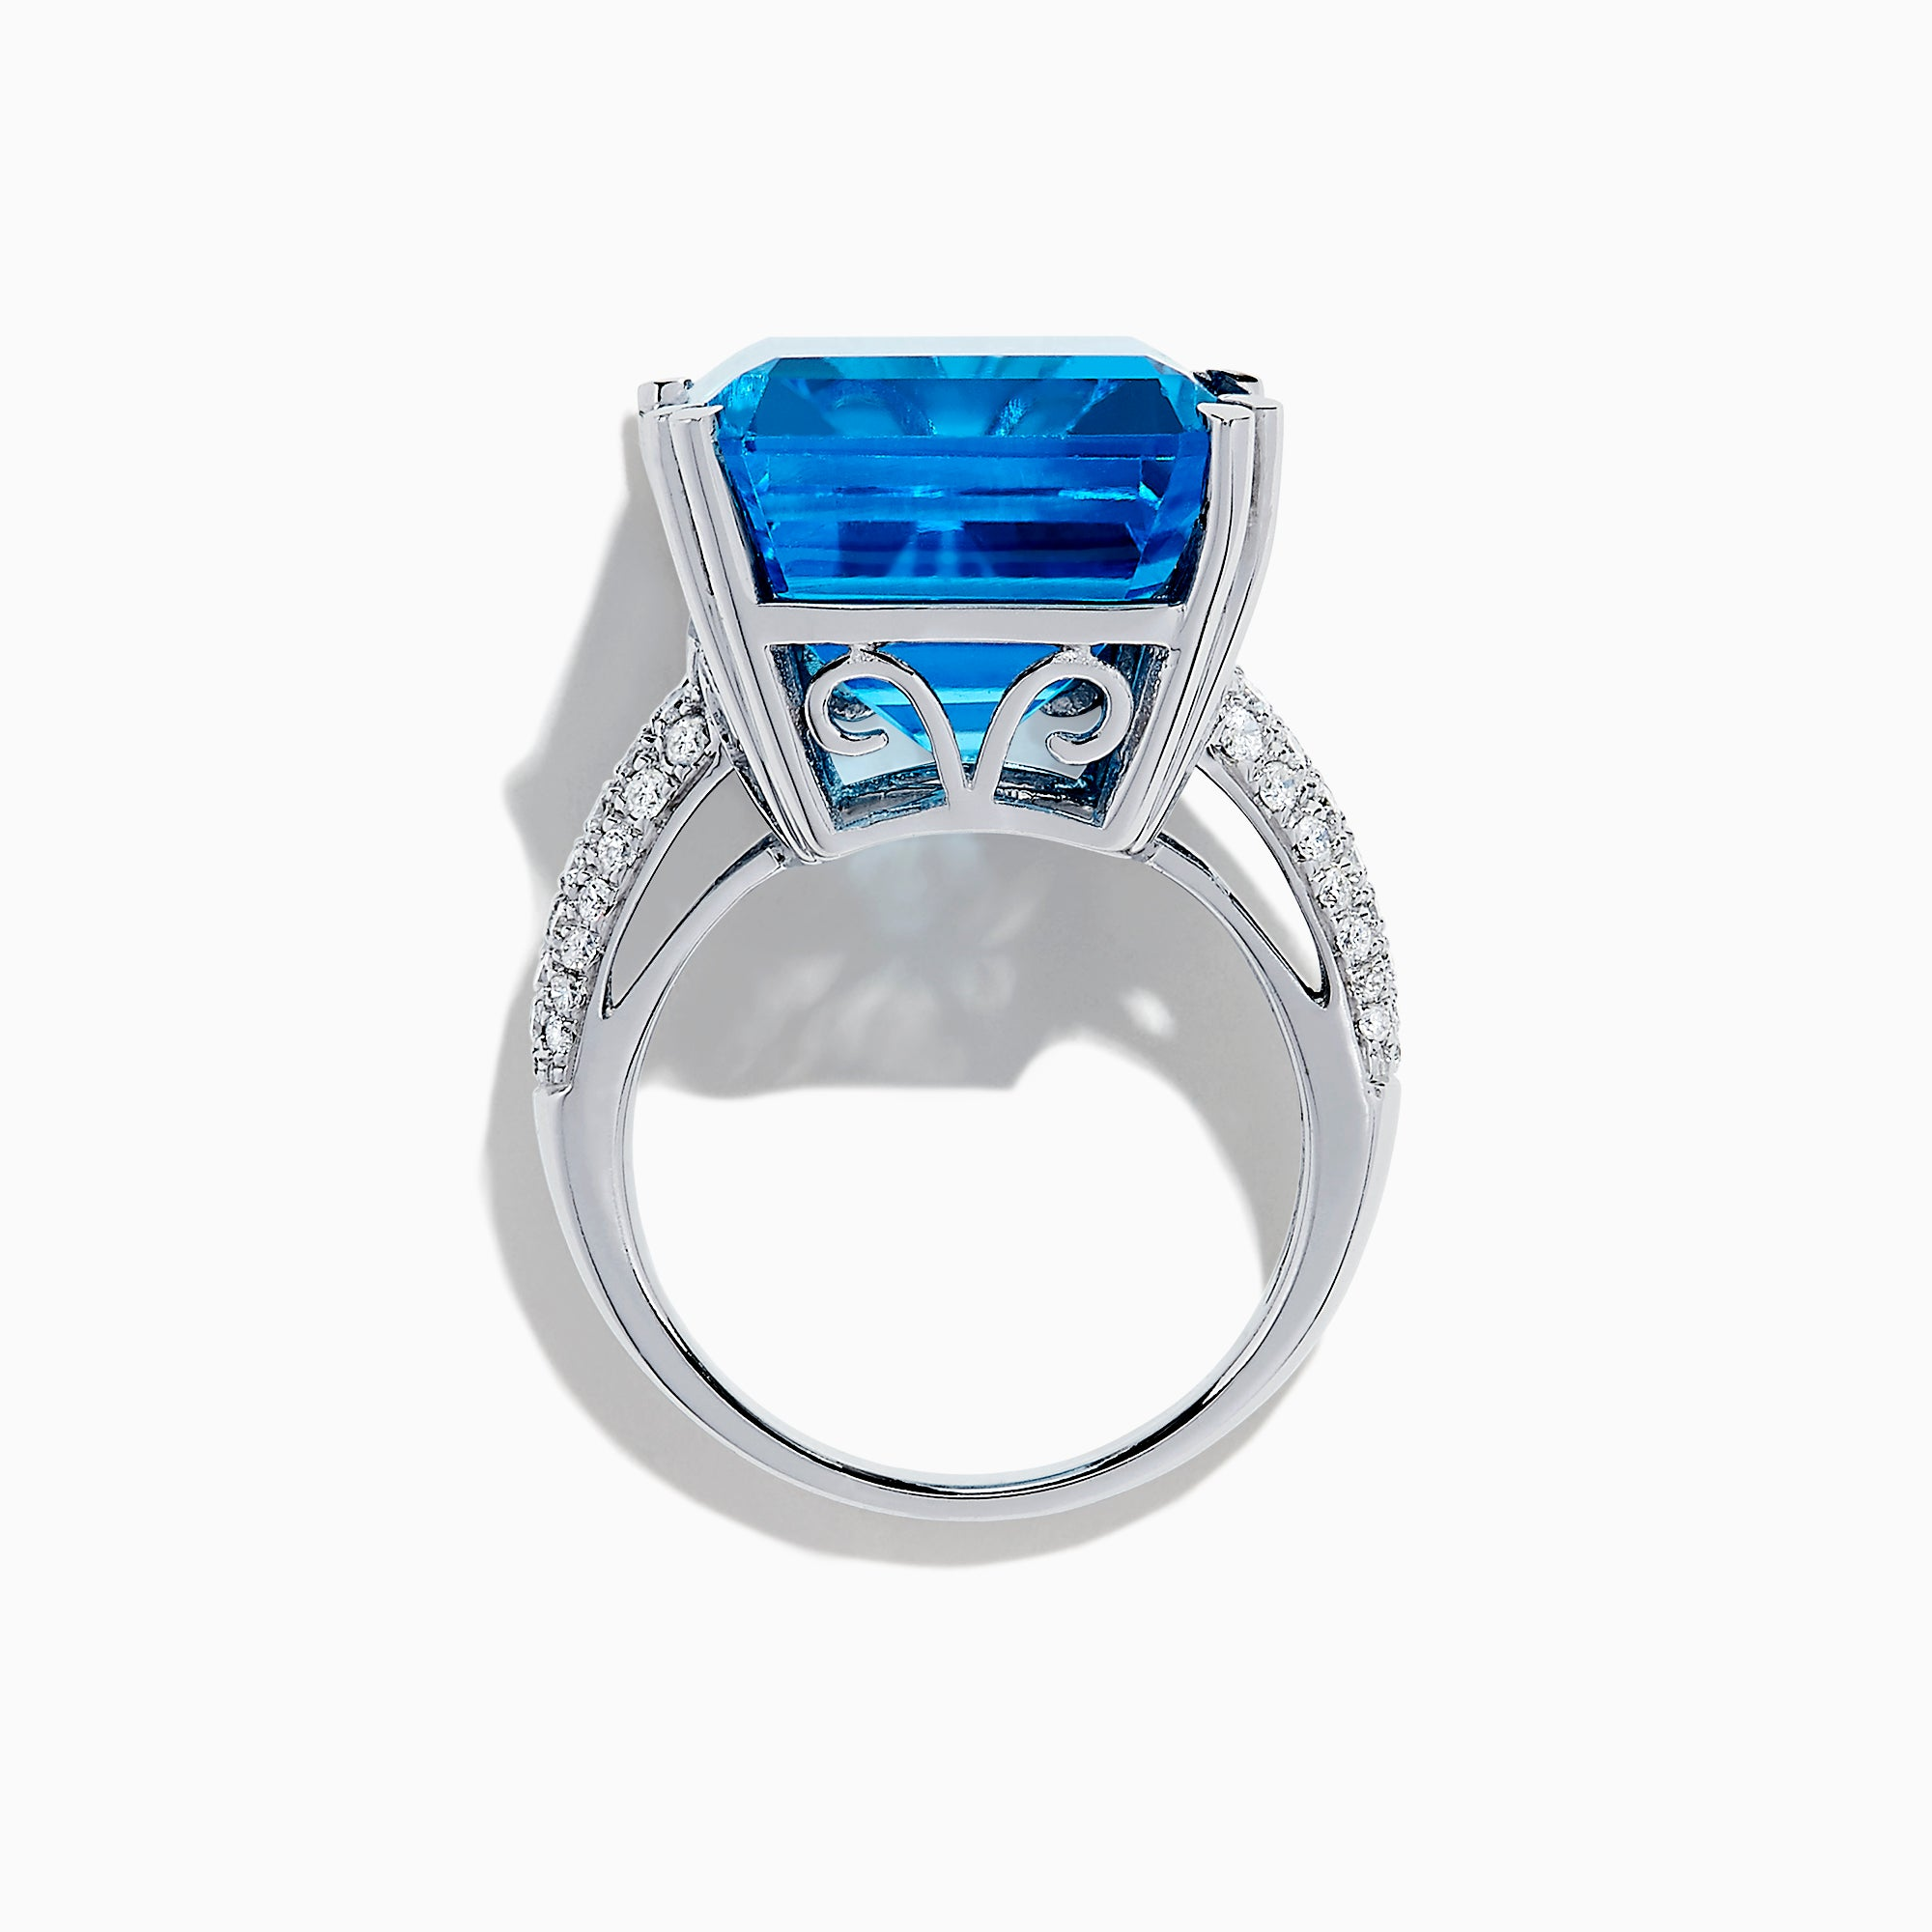 14K White Gold Blue Topaz and Diamond Ring, 29.29 TCW